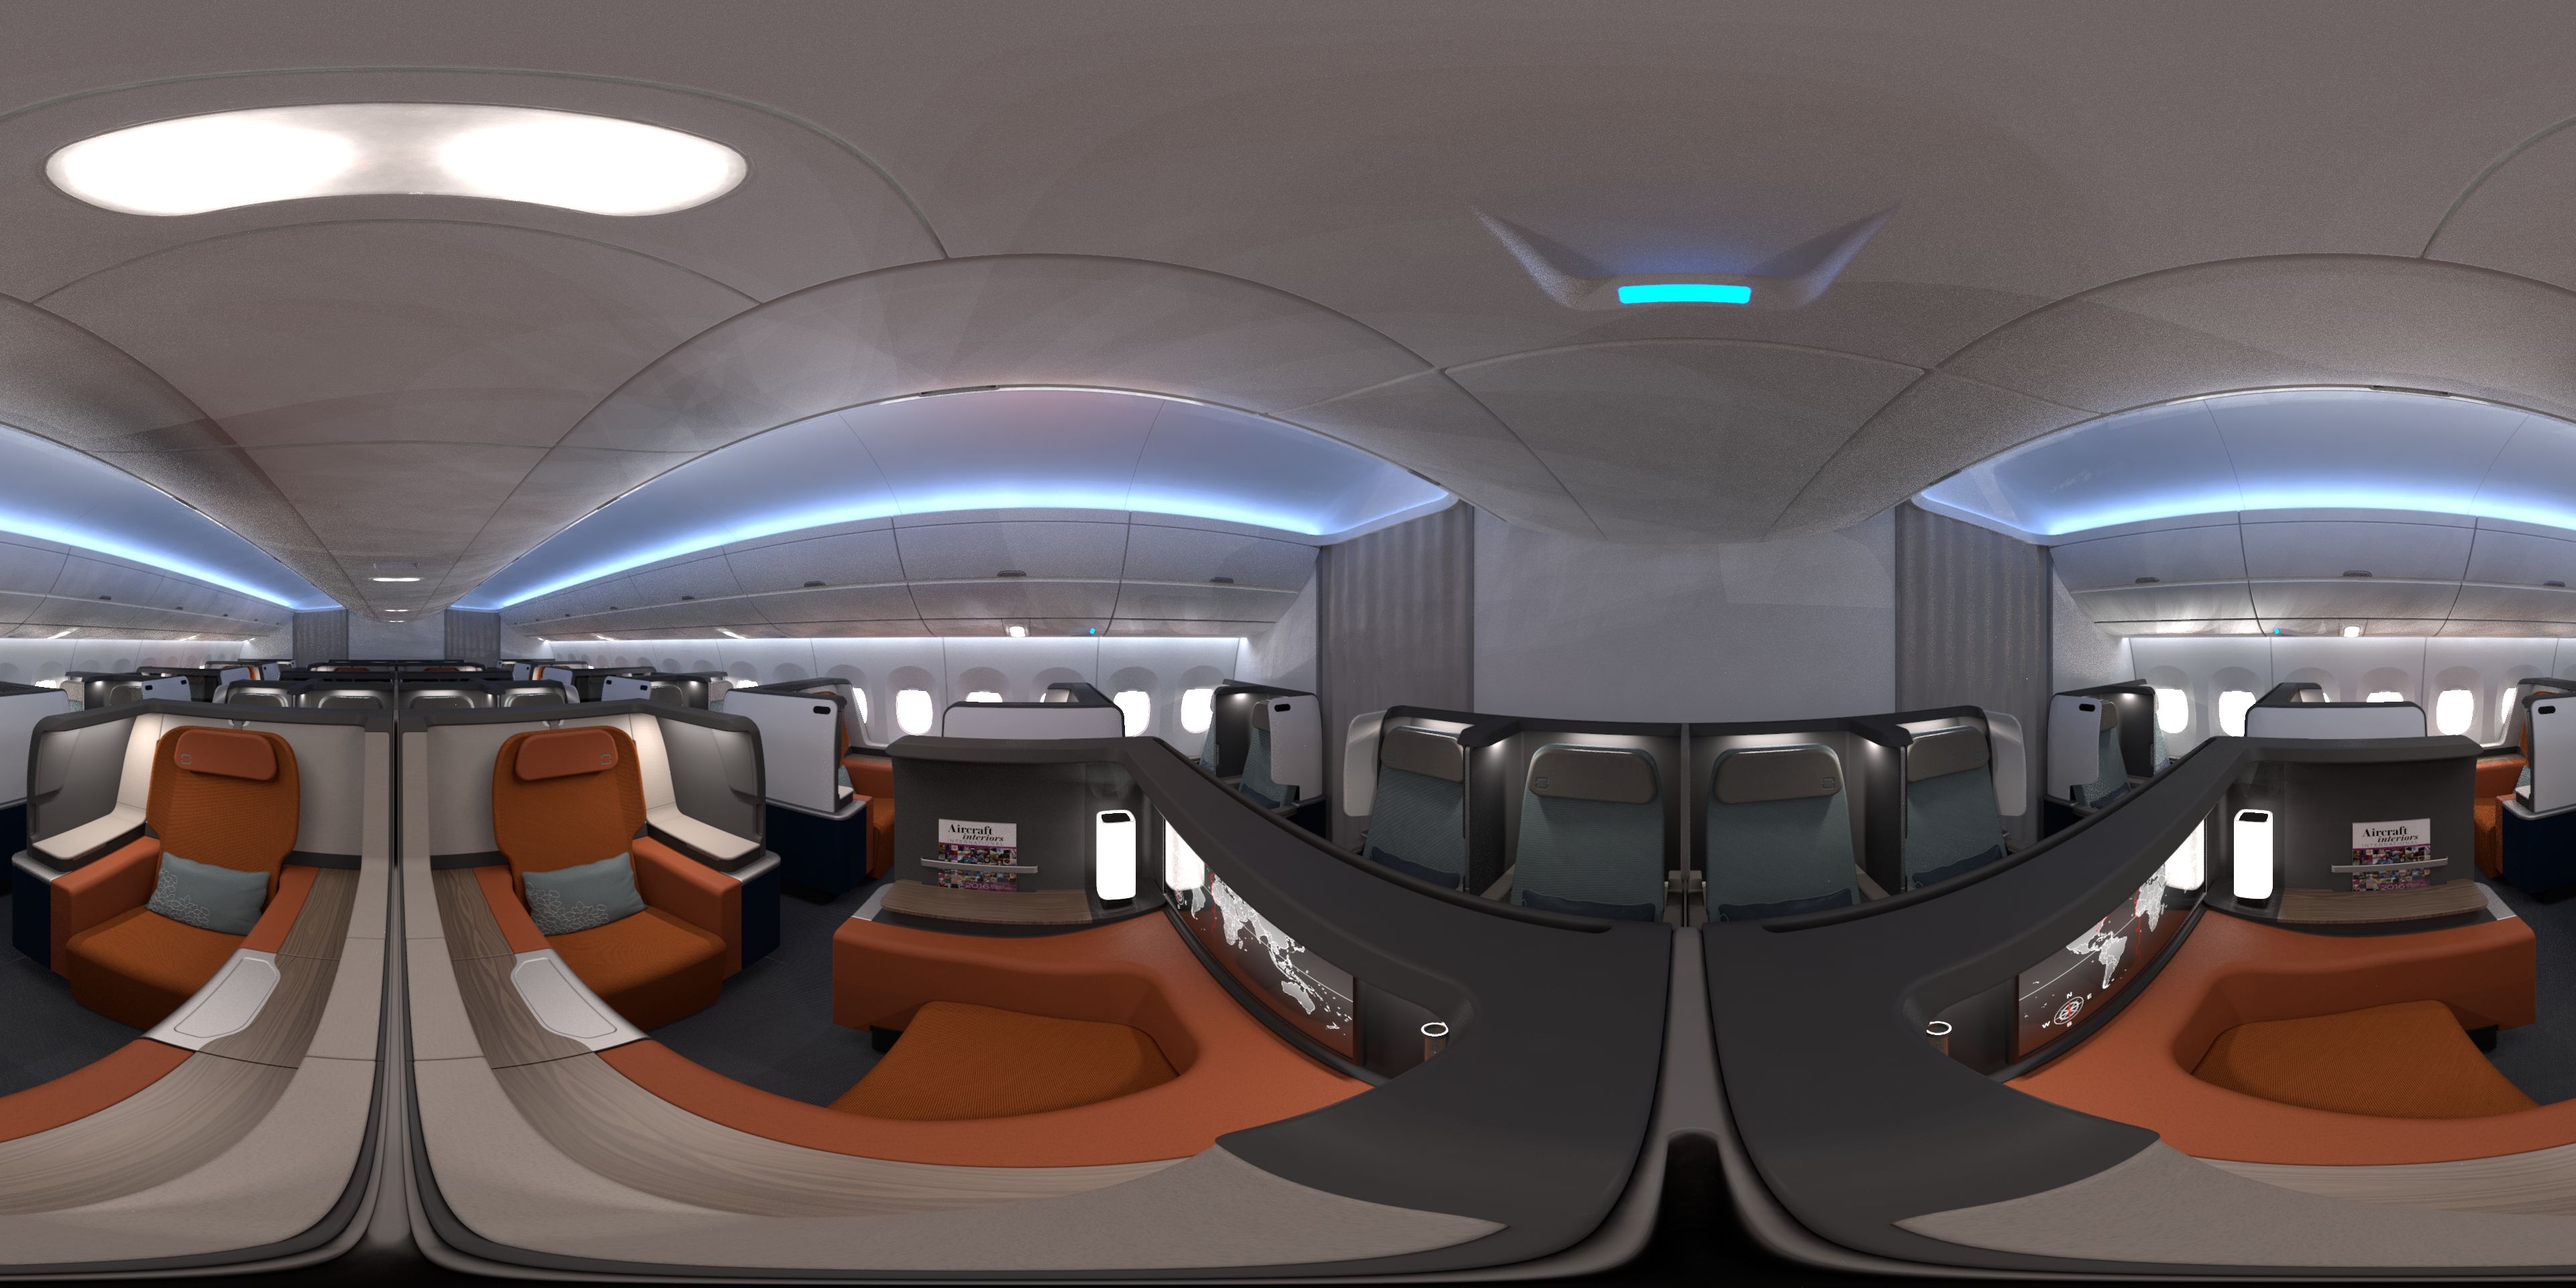 1707-keyshot-7-formation-design-aircraft-interior-VR-01.jpg